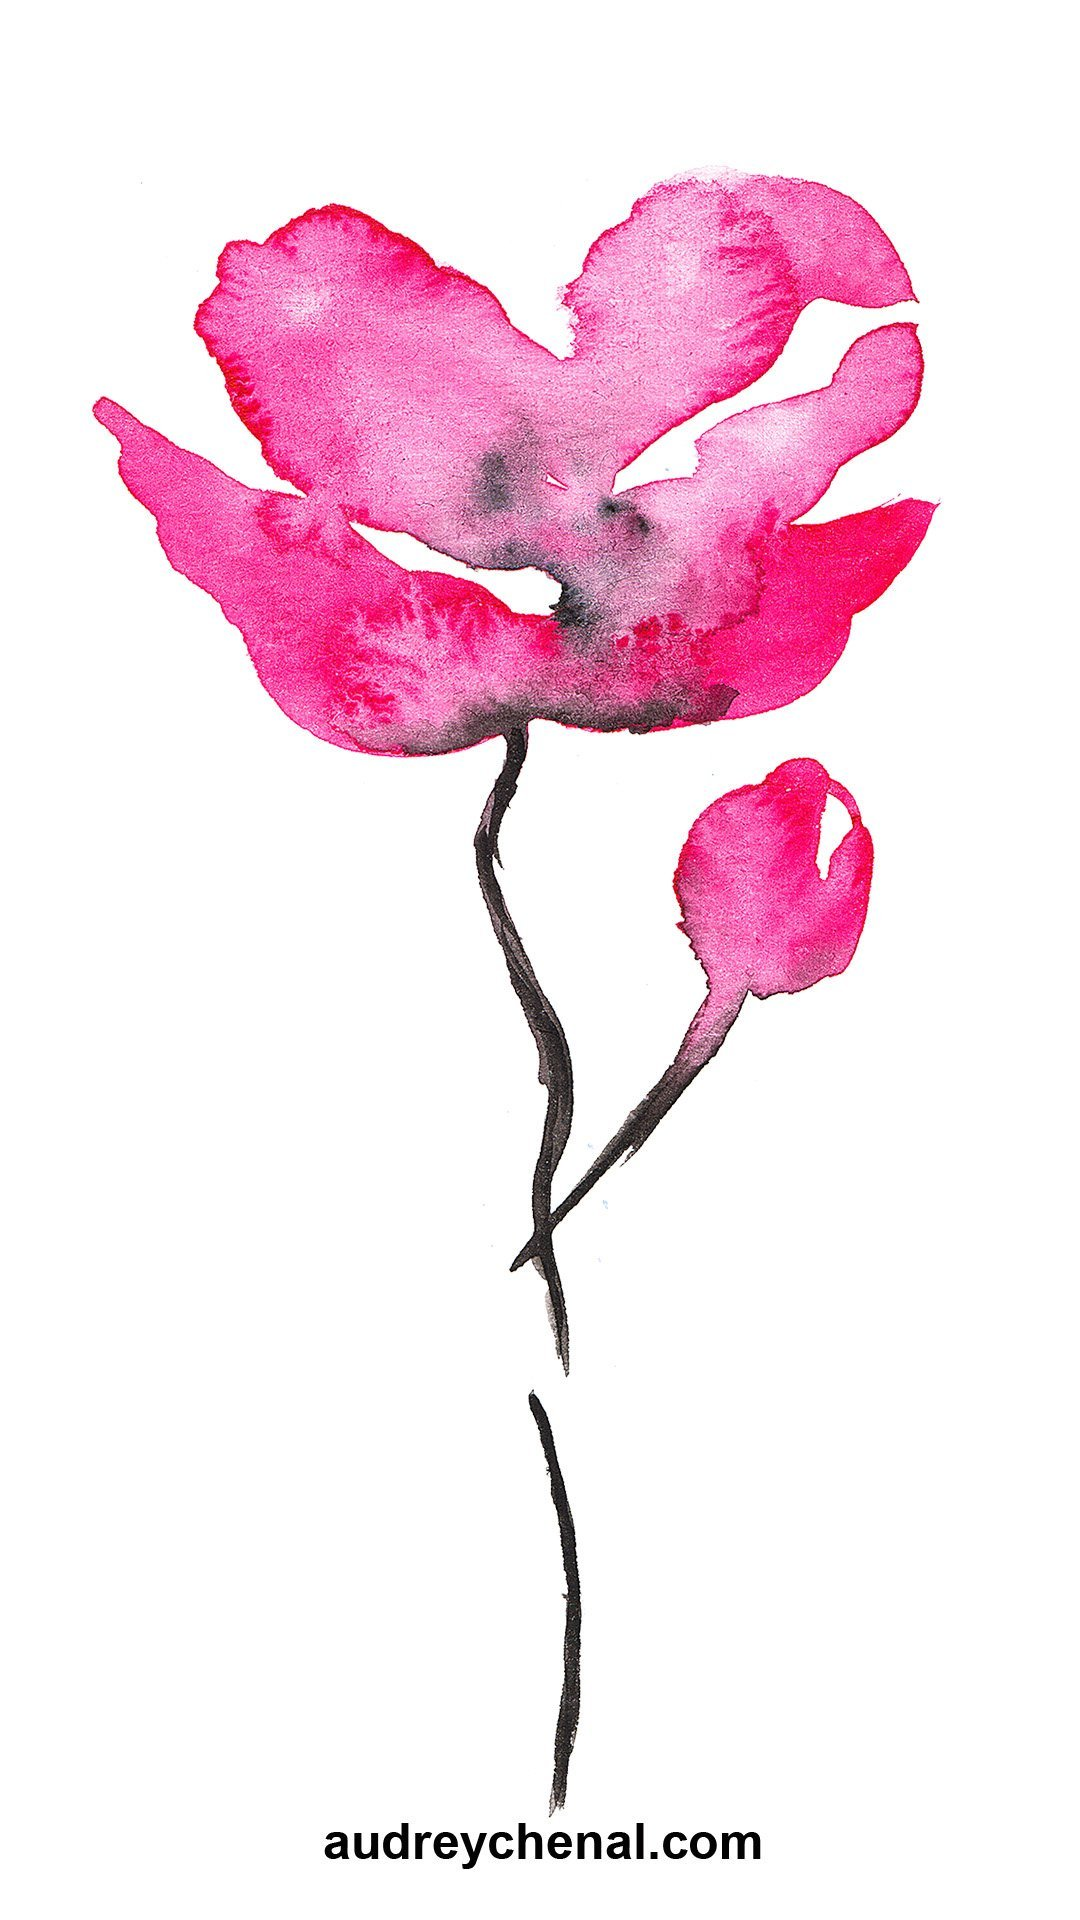 Modern black pink watercolor abstract hand painted flower wallpaper by Audrey Chenal